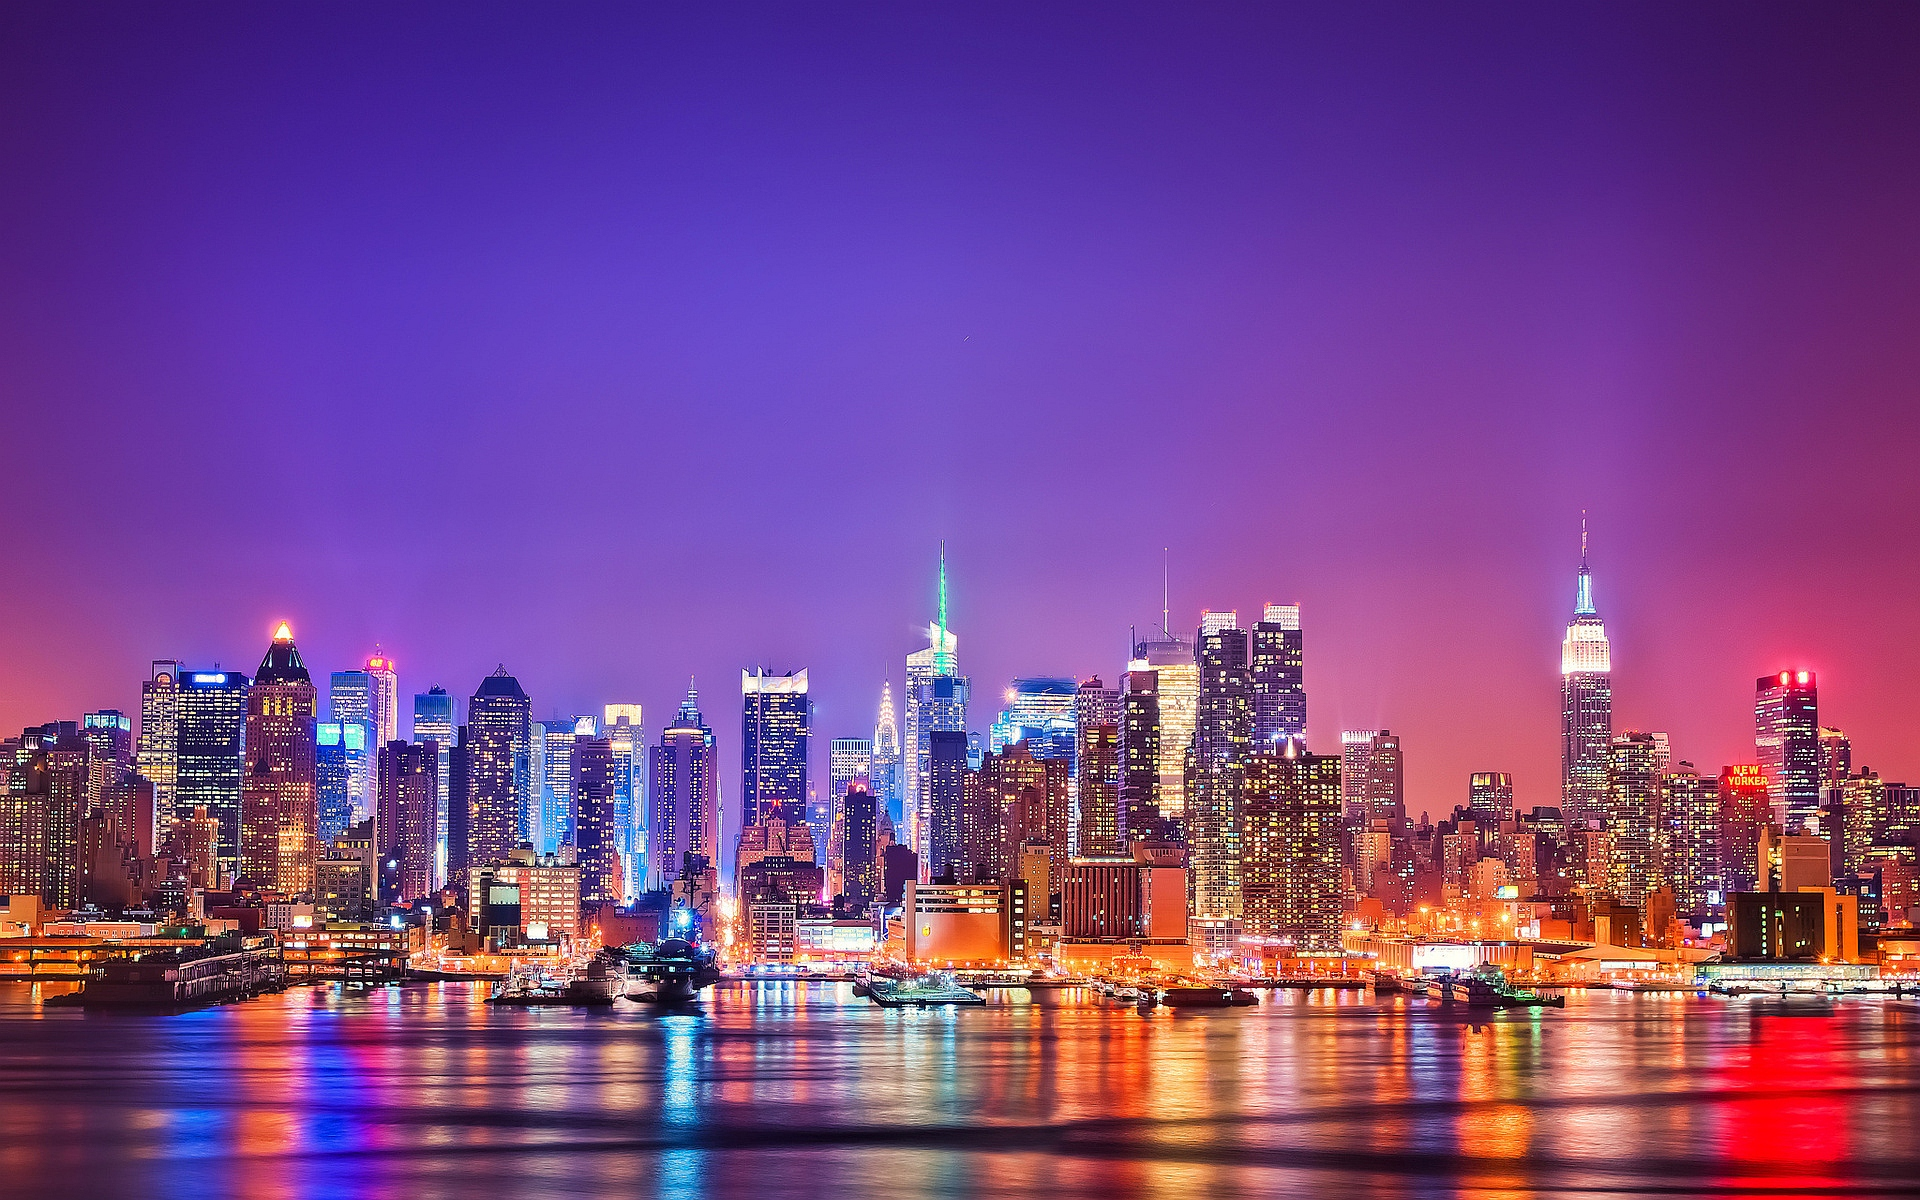 Colorful New York City